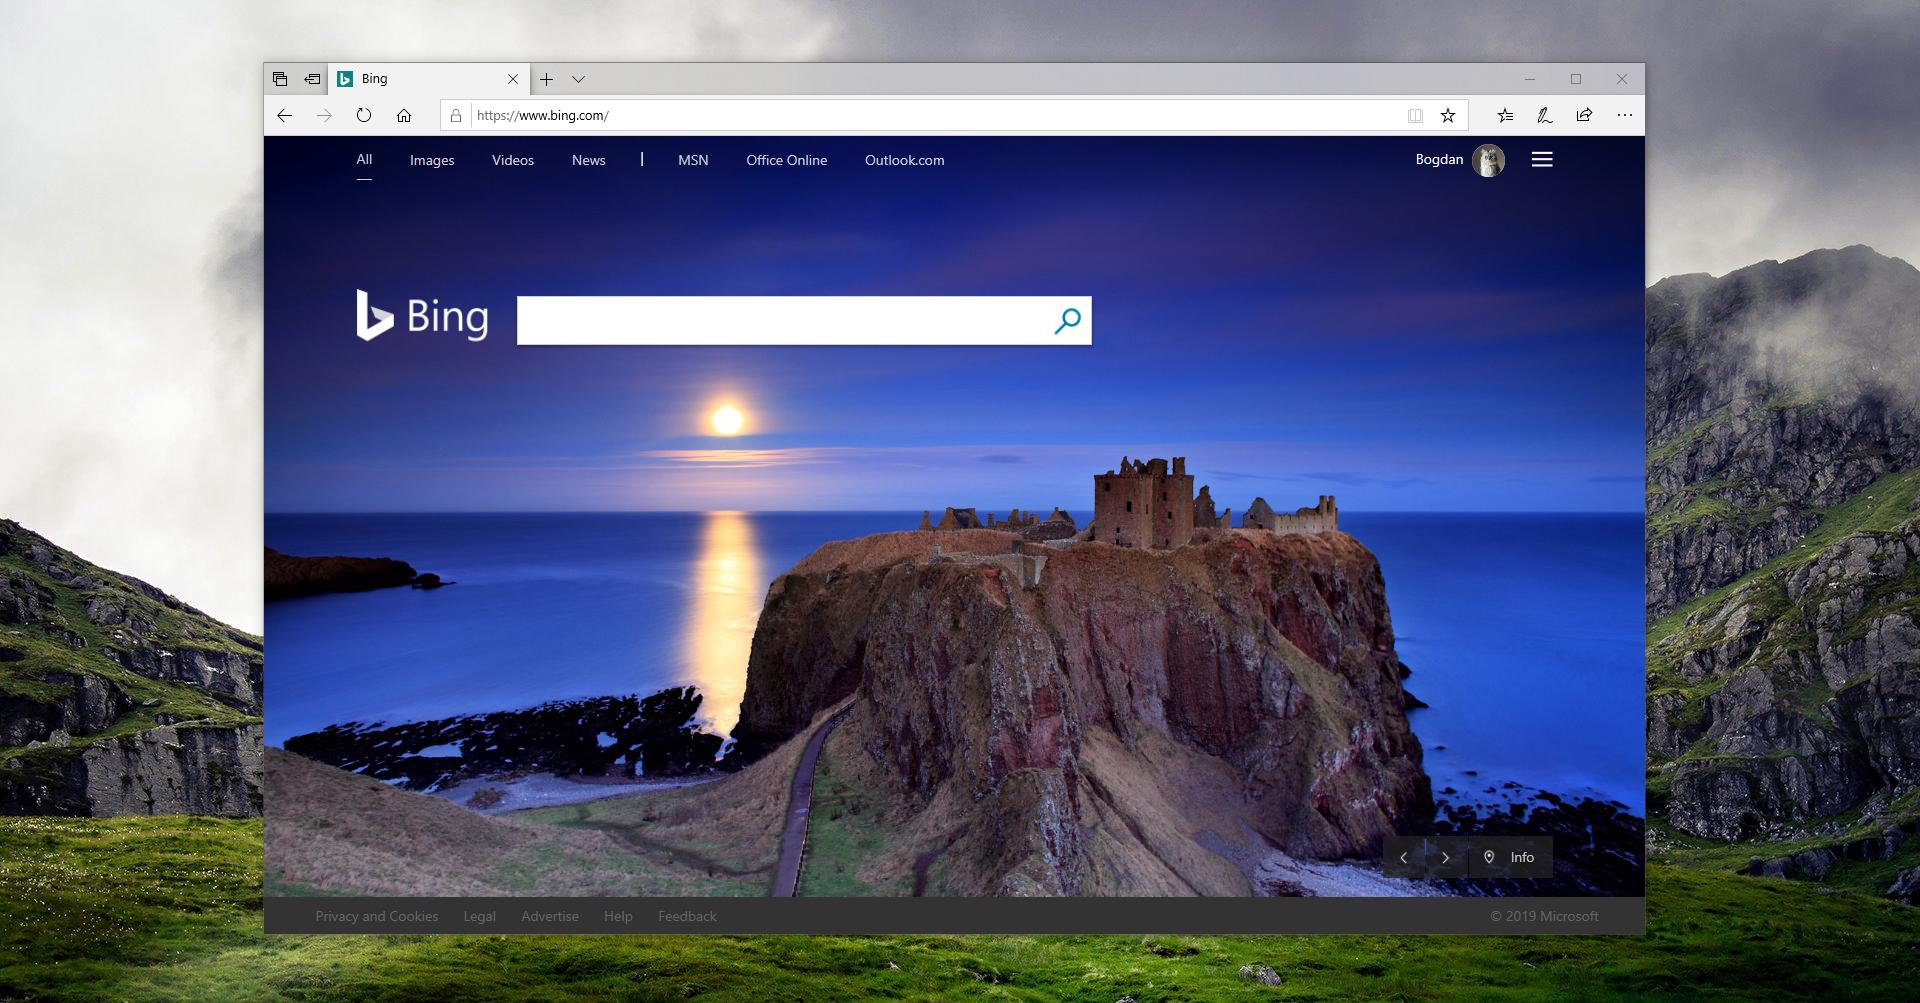 China Has Blocked Microsoft's Bing Search Engine